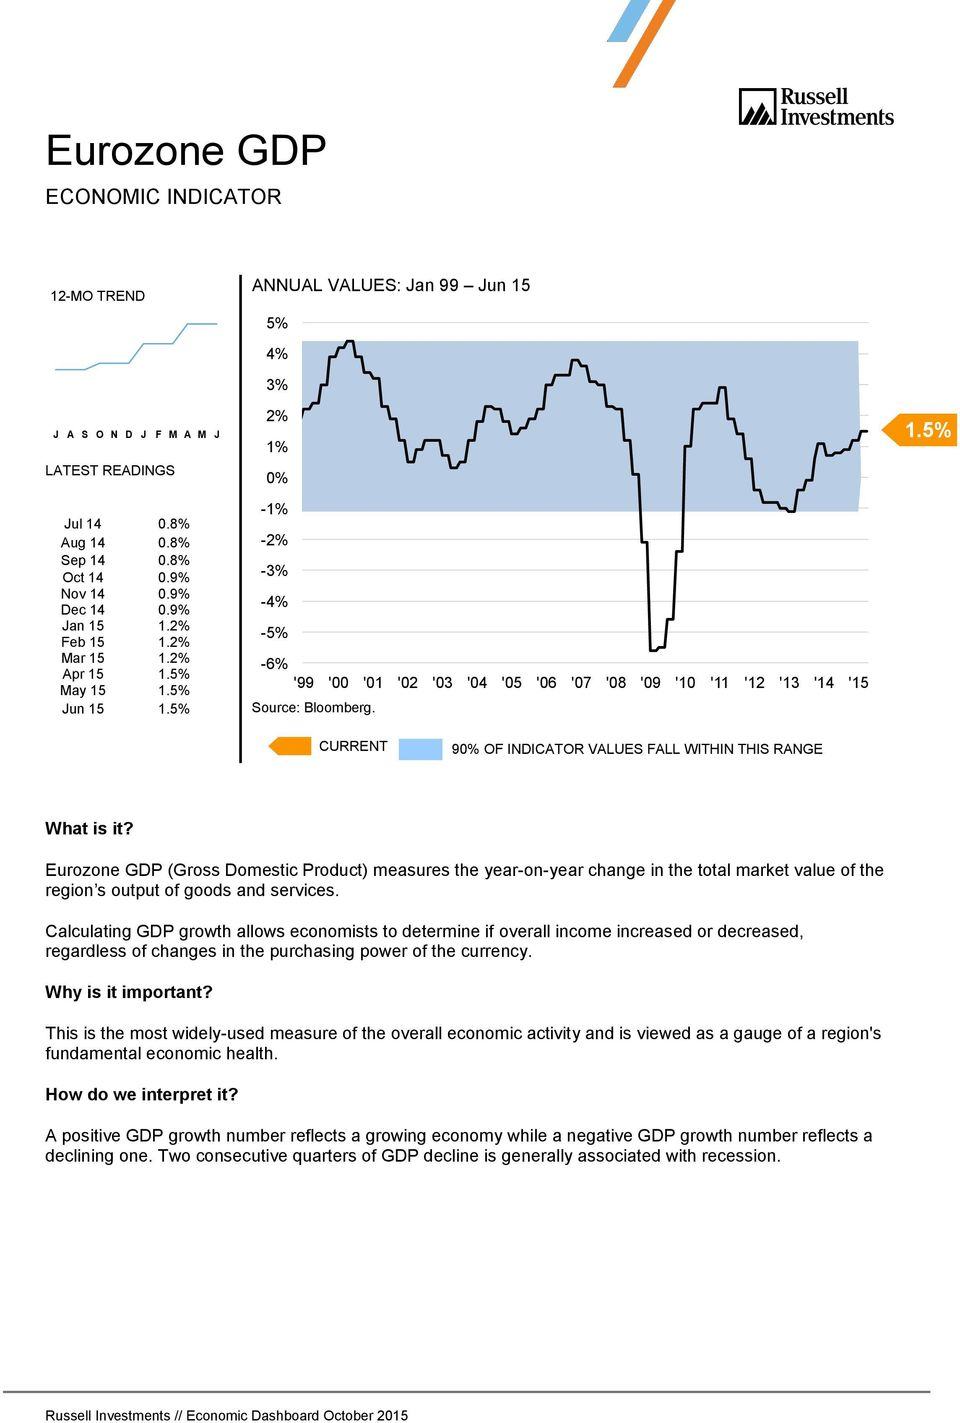 5% Eurozone GDP (Gross Domestic Product) measures the year-on-year change in the total market value of the region s output of goods and services.